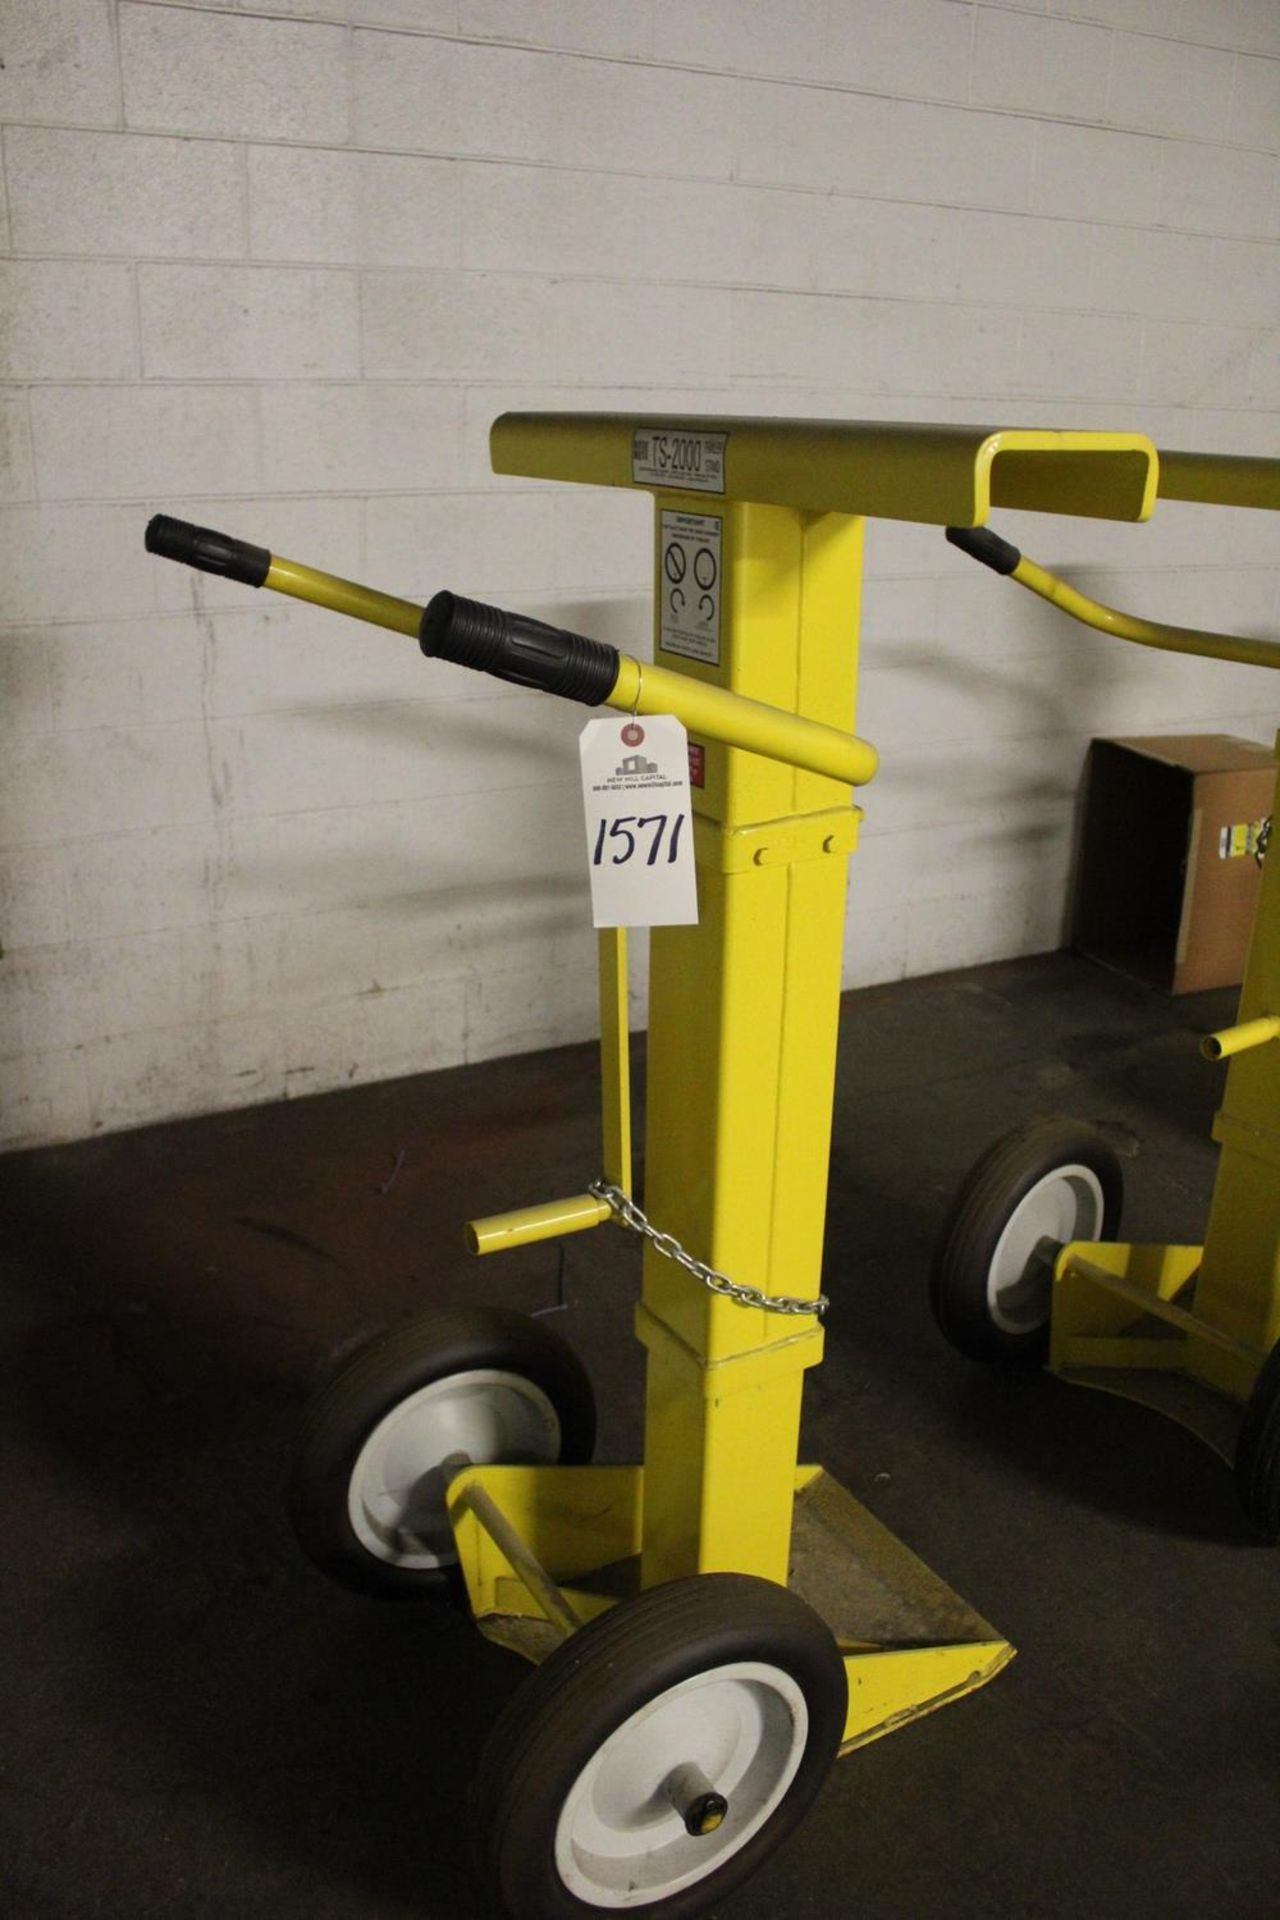 Lot 1571 - Rite Hite TS-2000 Trailer Stand - Subject to Bulk Bid Lot 15 | Rig Fee: Hand Carry or Contact Rigger